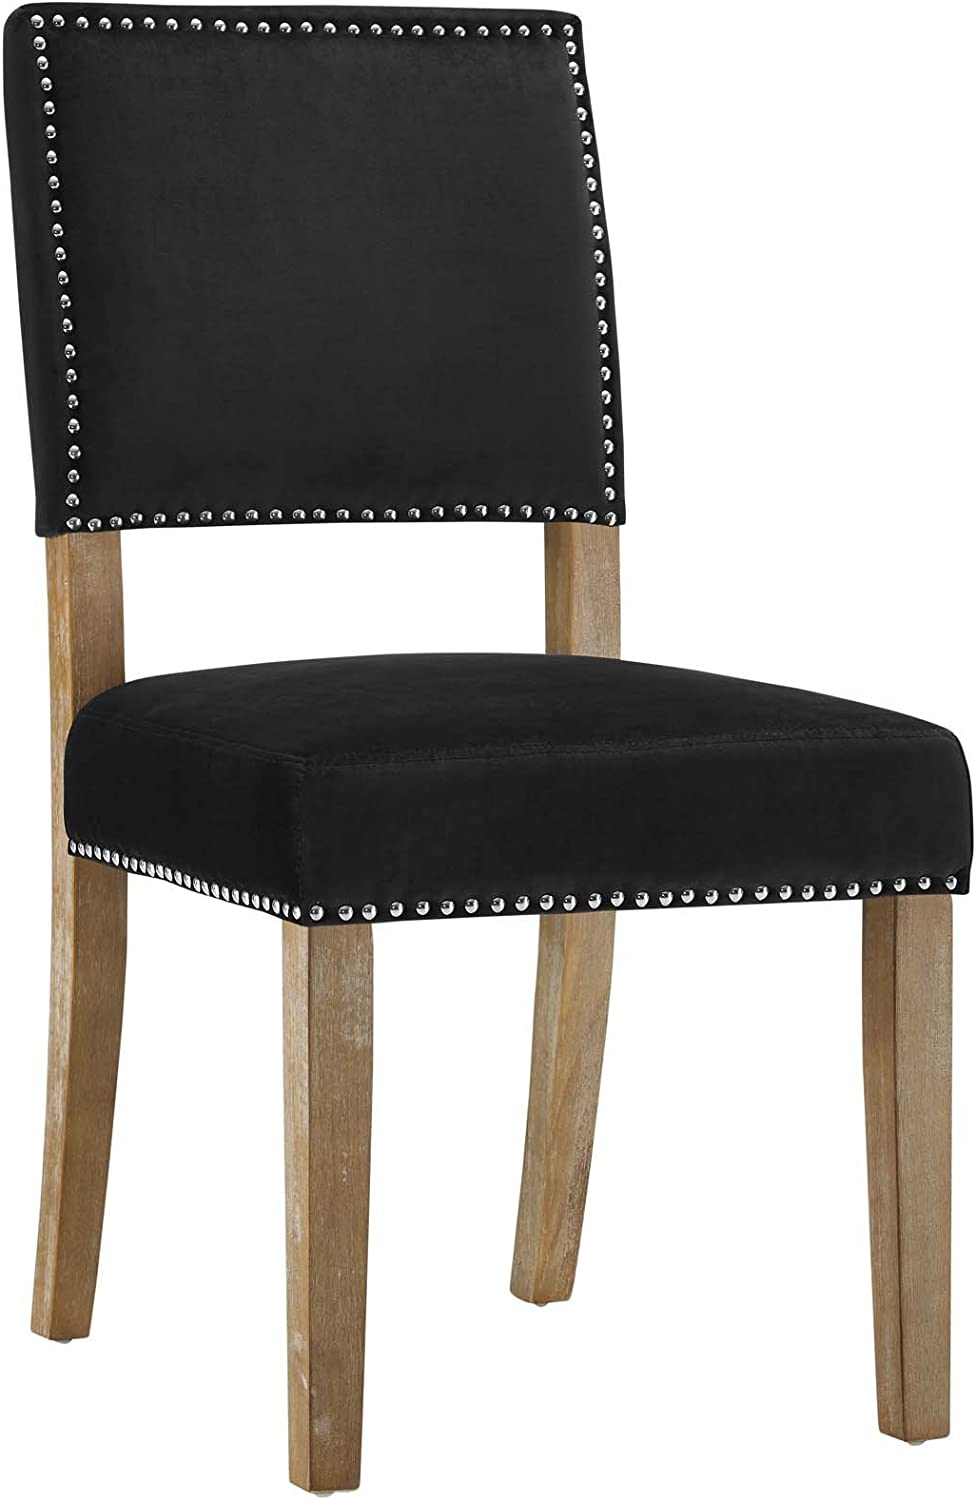 Modway Oblige Wood Dining Chair, Black